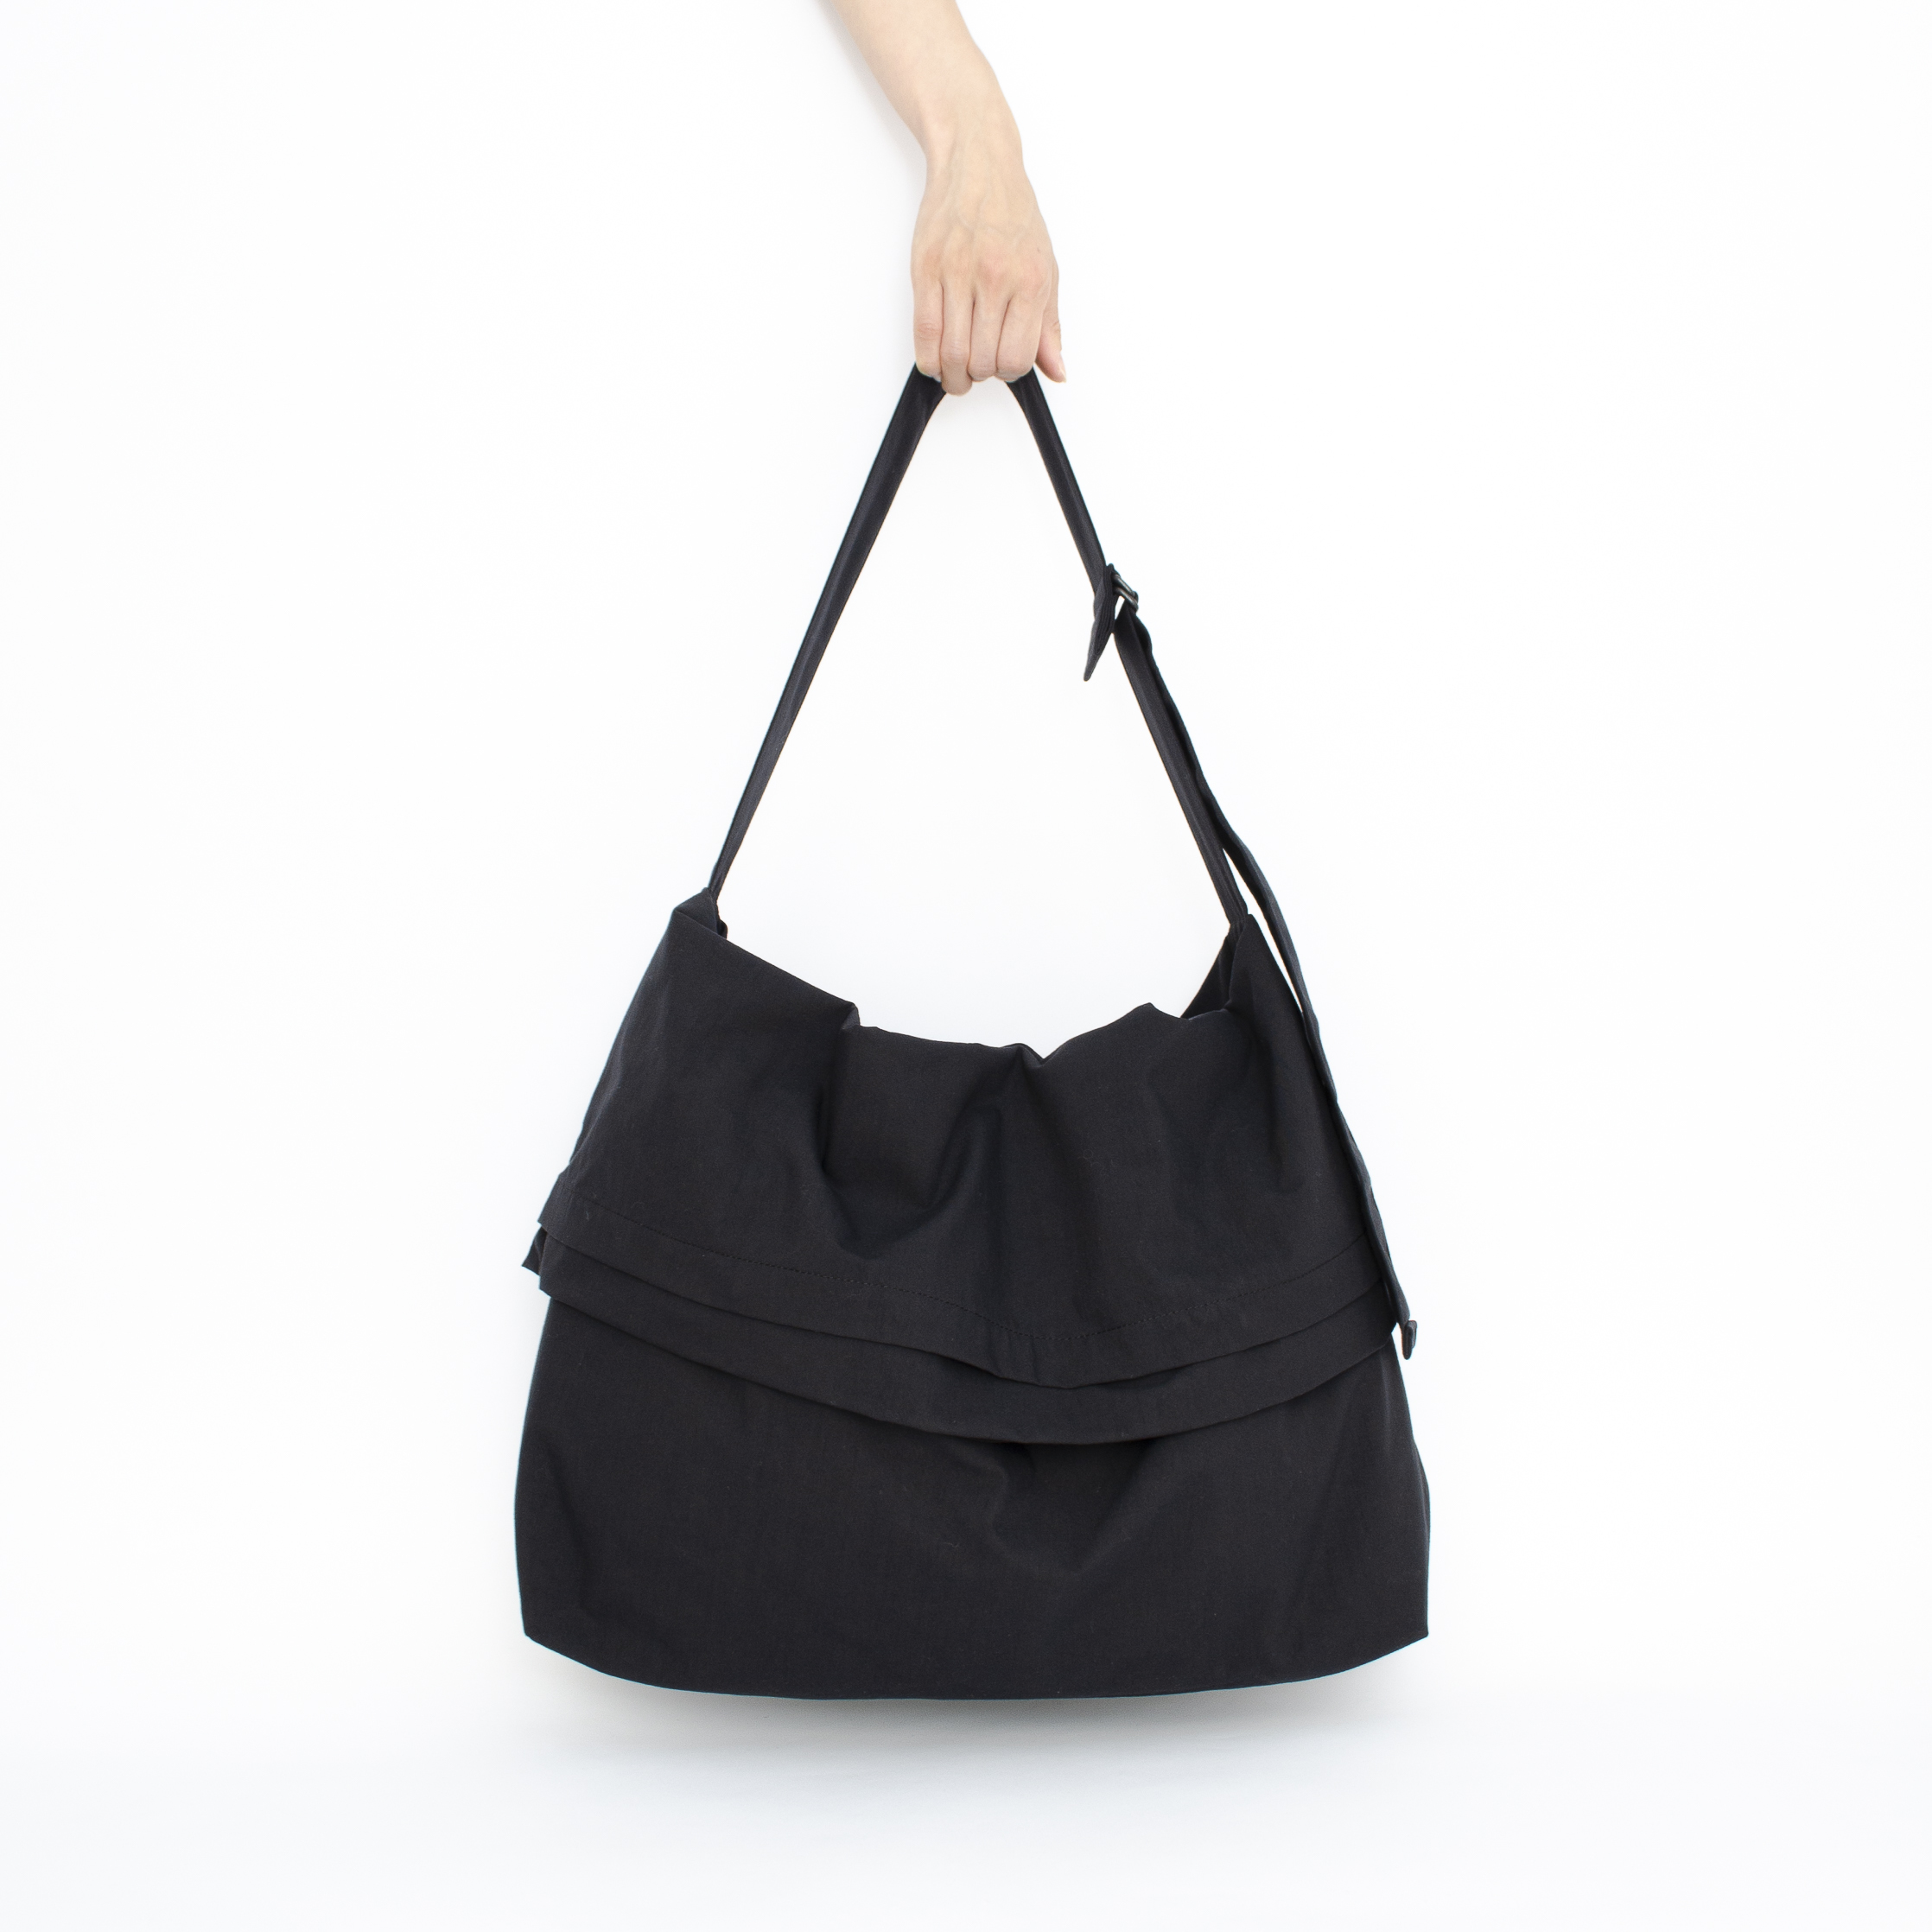 KaILI T/S TRANSFORM BAG L